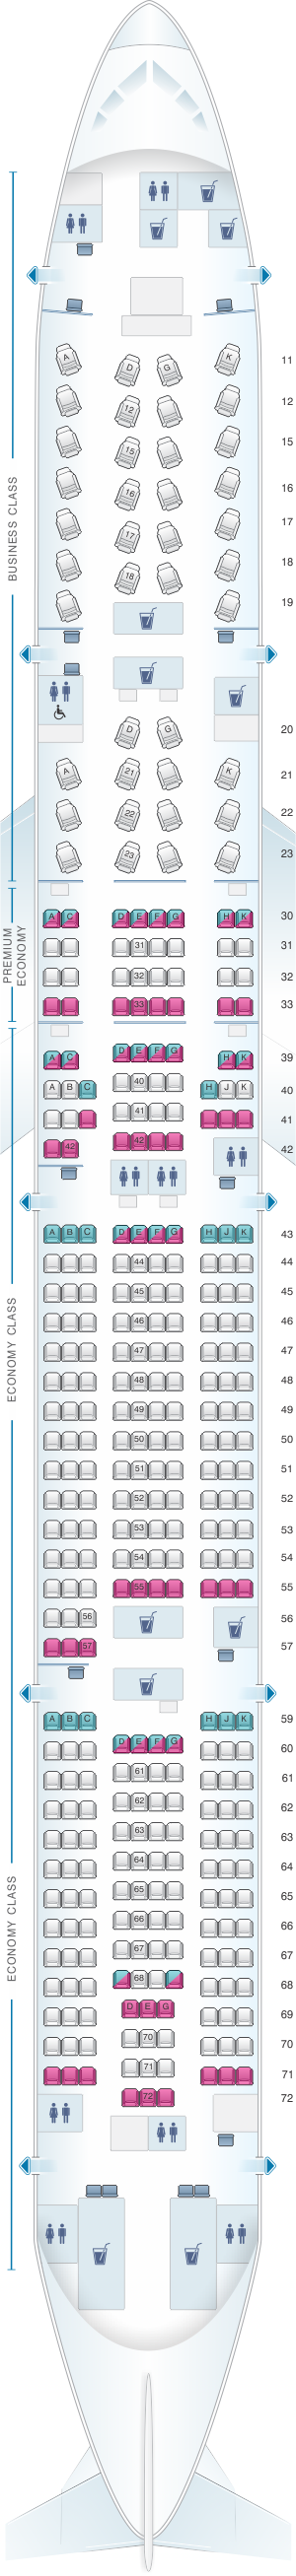 seat map cathay pacific 777 300er Seat Map Cathay Pacific Airways Boeing B777 300 77k Seatmaestro seat map cathay pacific 777 300er